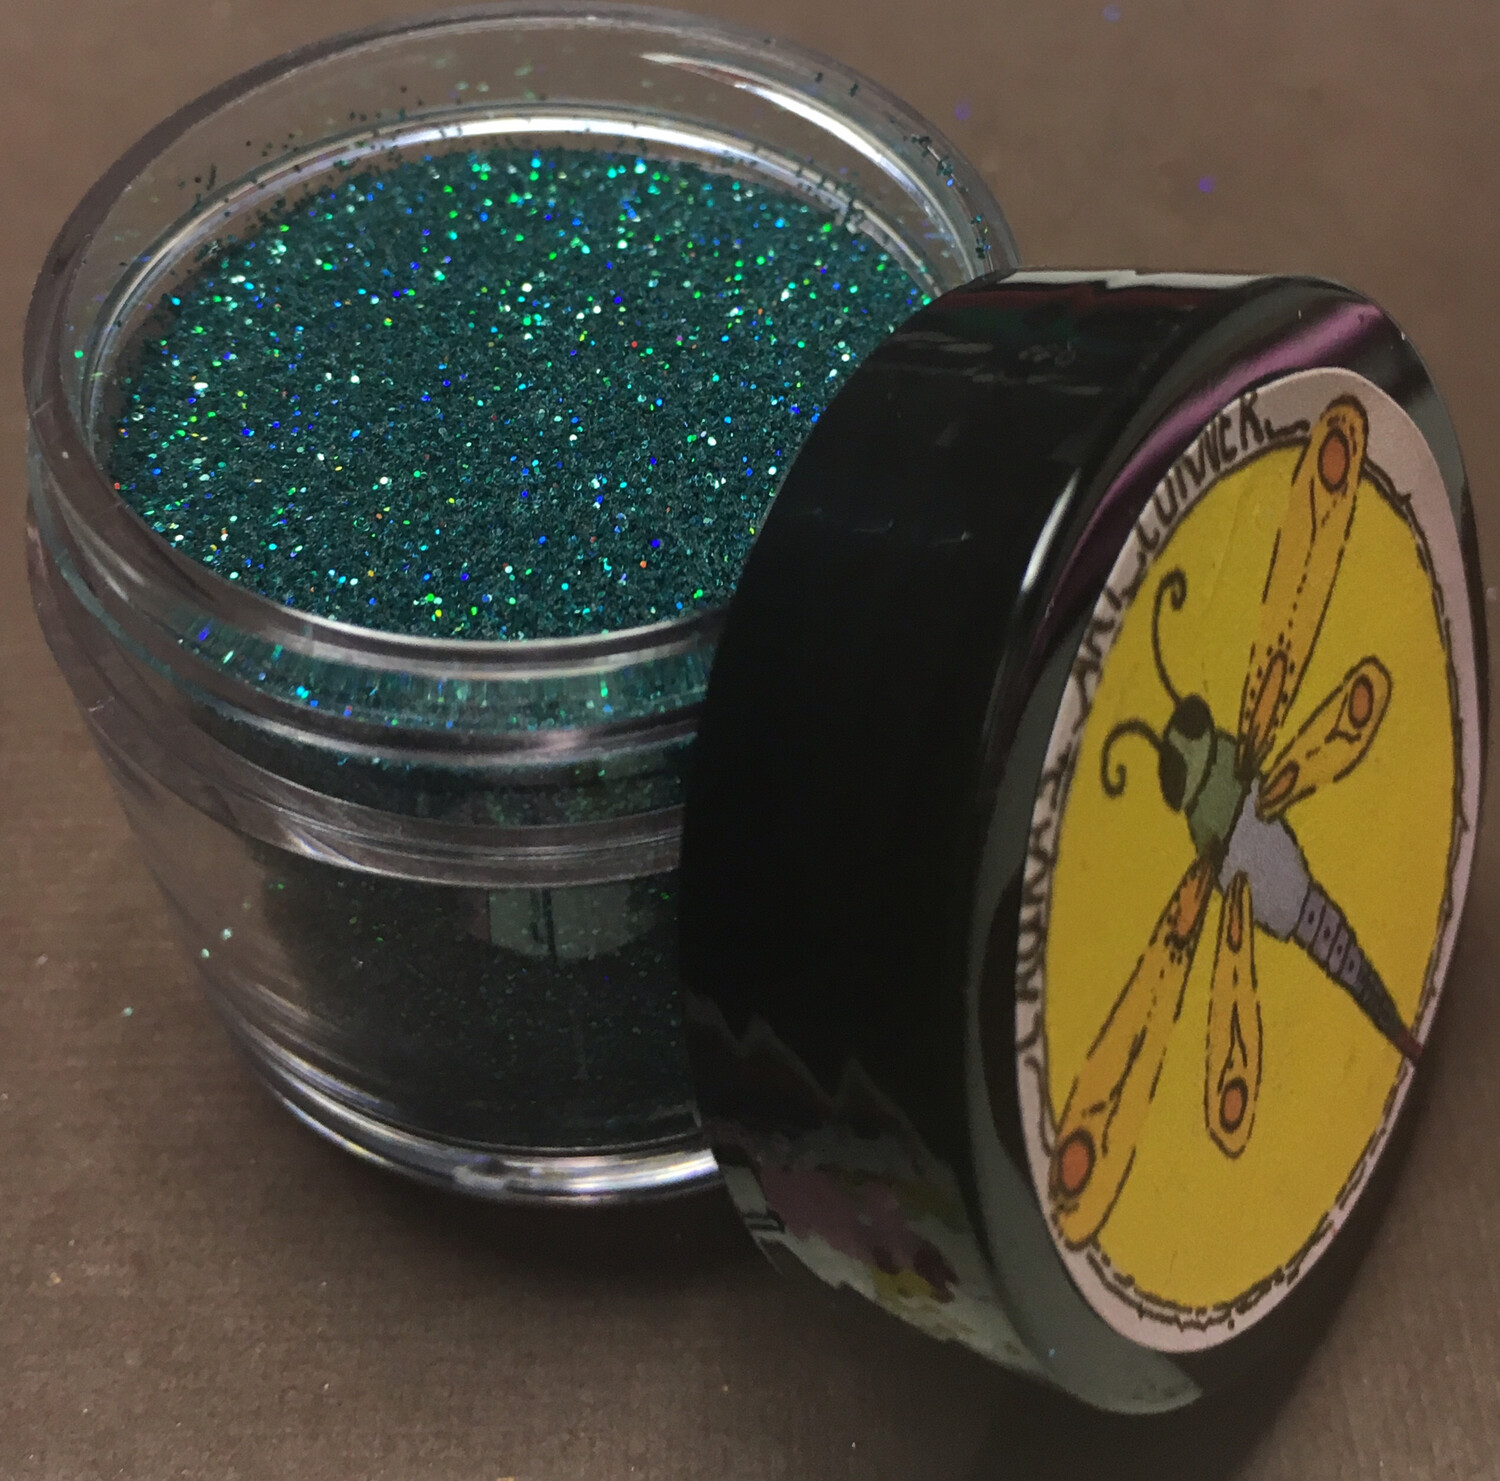 Peacock Sparkle SuperFine Holographic Glitter (NEW)